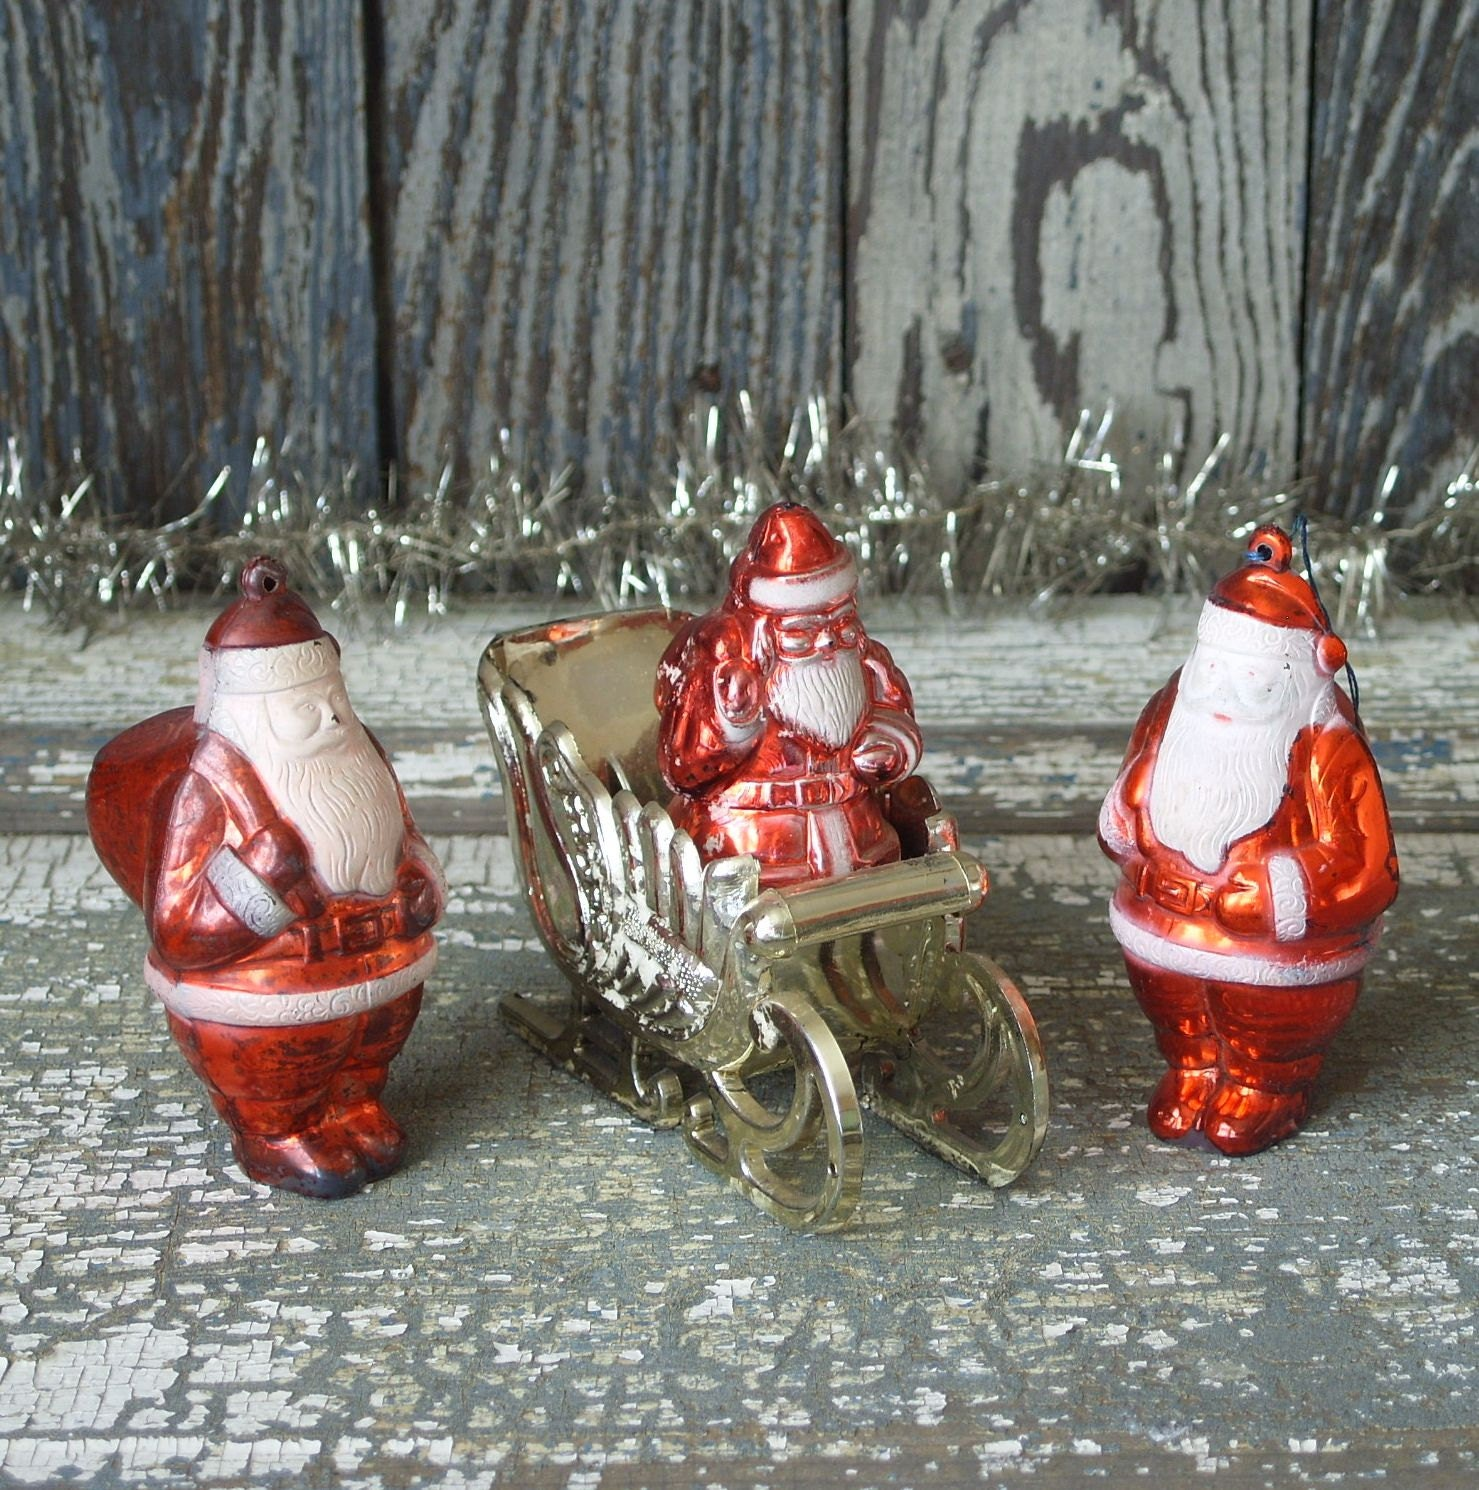 Lot Of 5 Vintage Christmas Decorations Kitsch Santa Claus: Vintage Hard Plastic Santa Claus Sleigh Christmas Ornament Lot